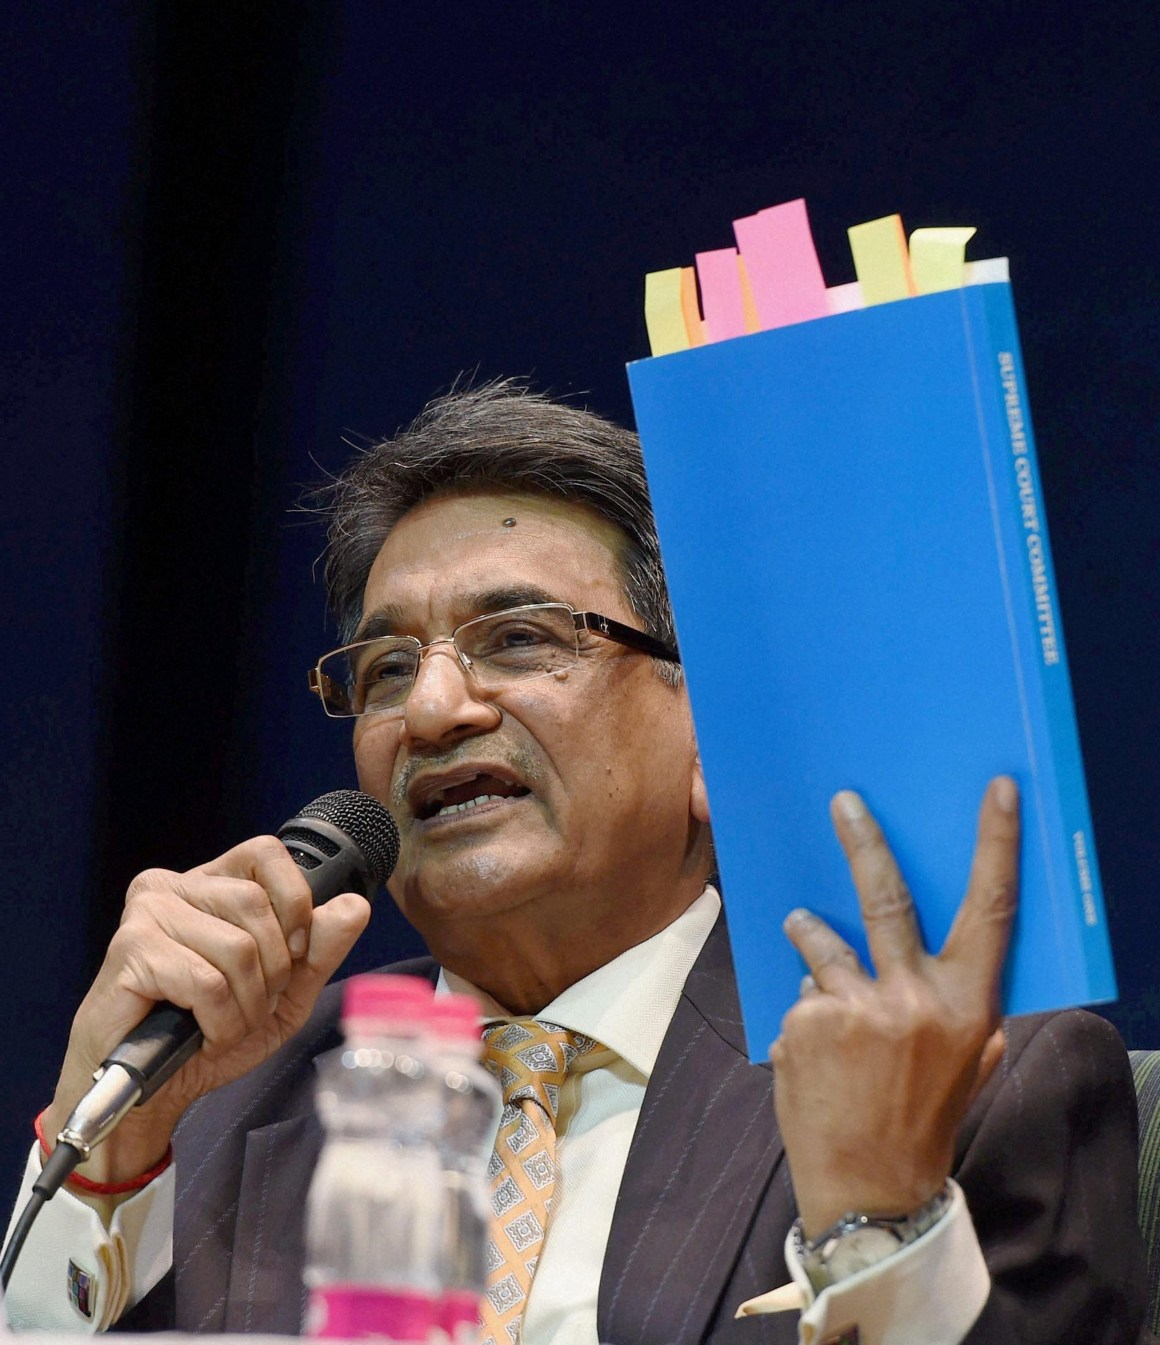 Chairman of the Supreme Court Committee on Reforms in Cricket, Justice (retd.) R M Lodha addressing a press conference after tabling the committee's report in New Delhi on January 4. Credit: PTI Photo by Subhav Shukla